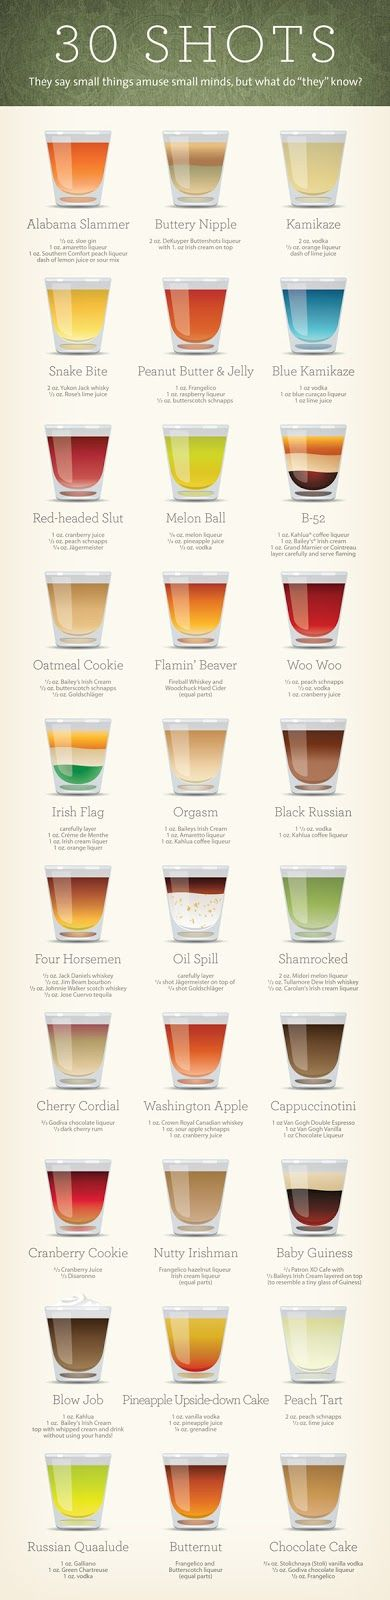 30 Shots Infographic by Donald Bullach